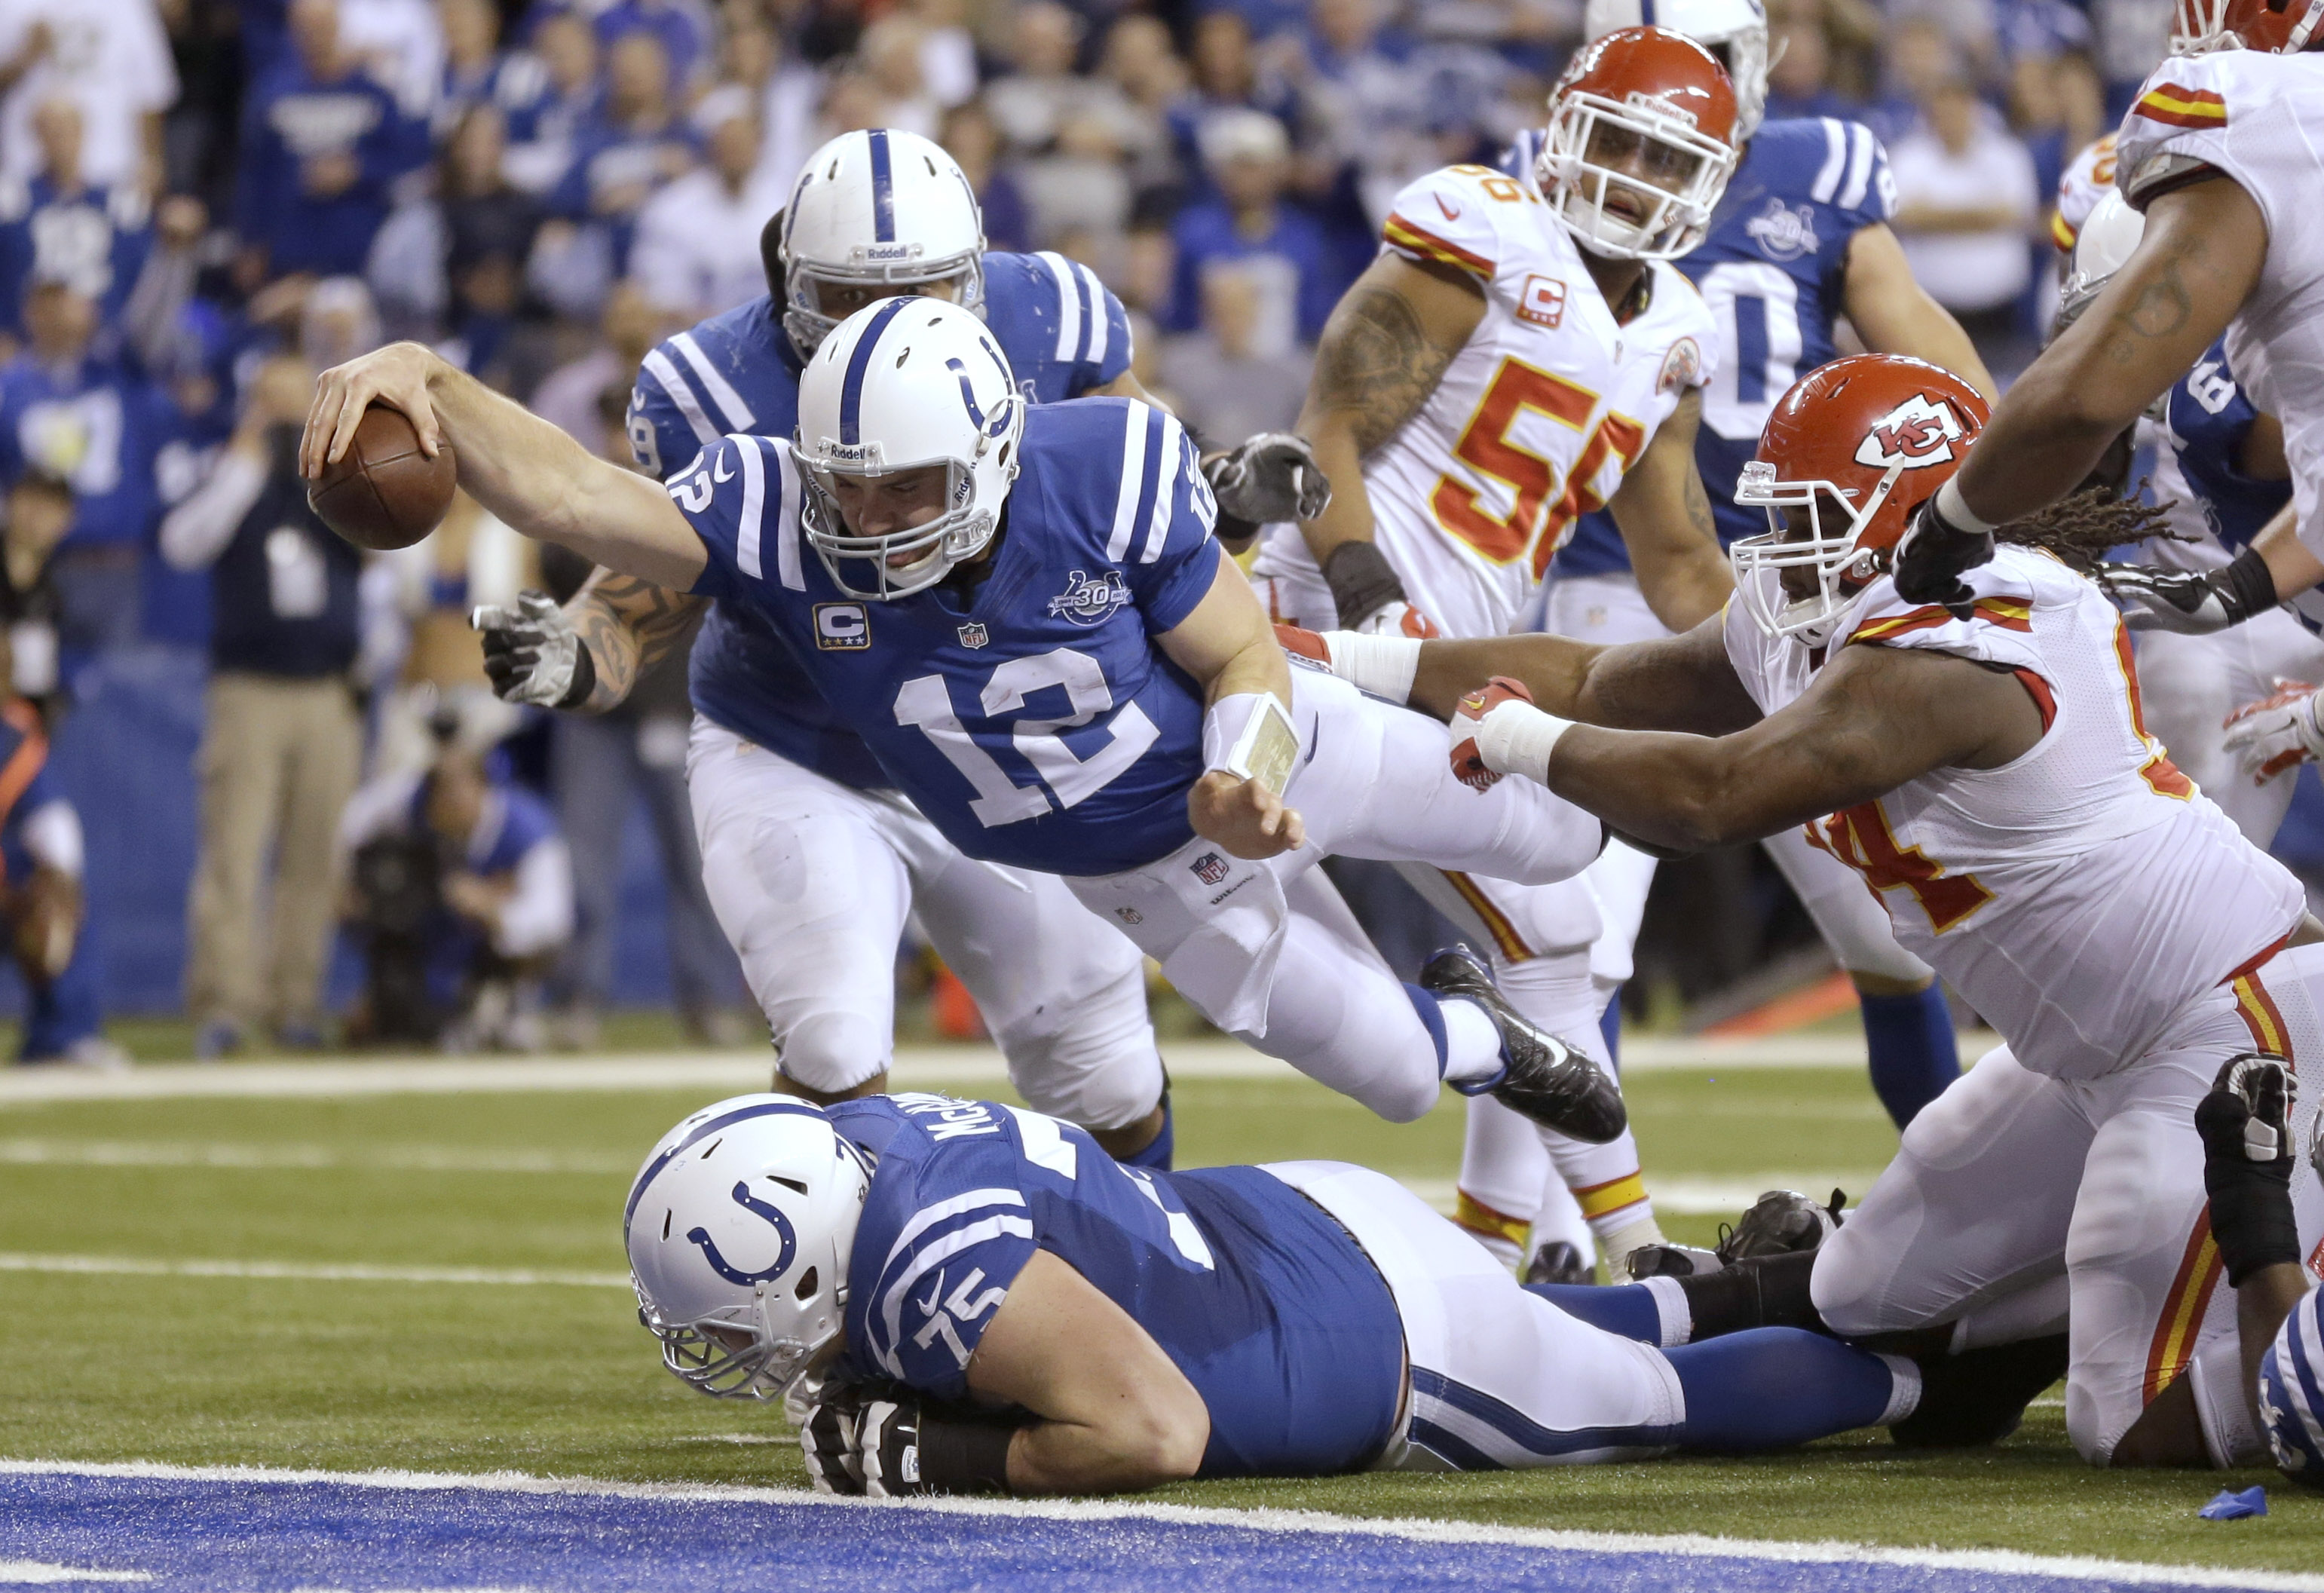 Indianapolis Colts quarterback Andrew Luck (12) dives for a touchdown after recovering a fumble by the Colts' running back Donald Brown (31) during the second half of an NFL wild-card playoff football game against the Kansas City Chiefs Saturday, Jan. 4, 2014, in Indianapolis. (AP Photo/Michael Conroy)